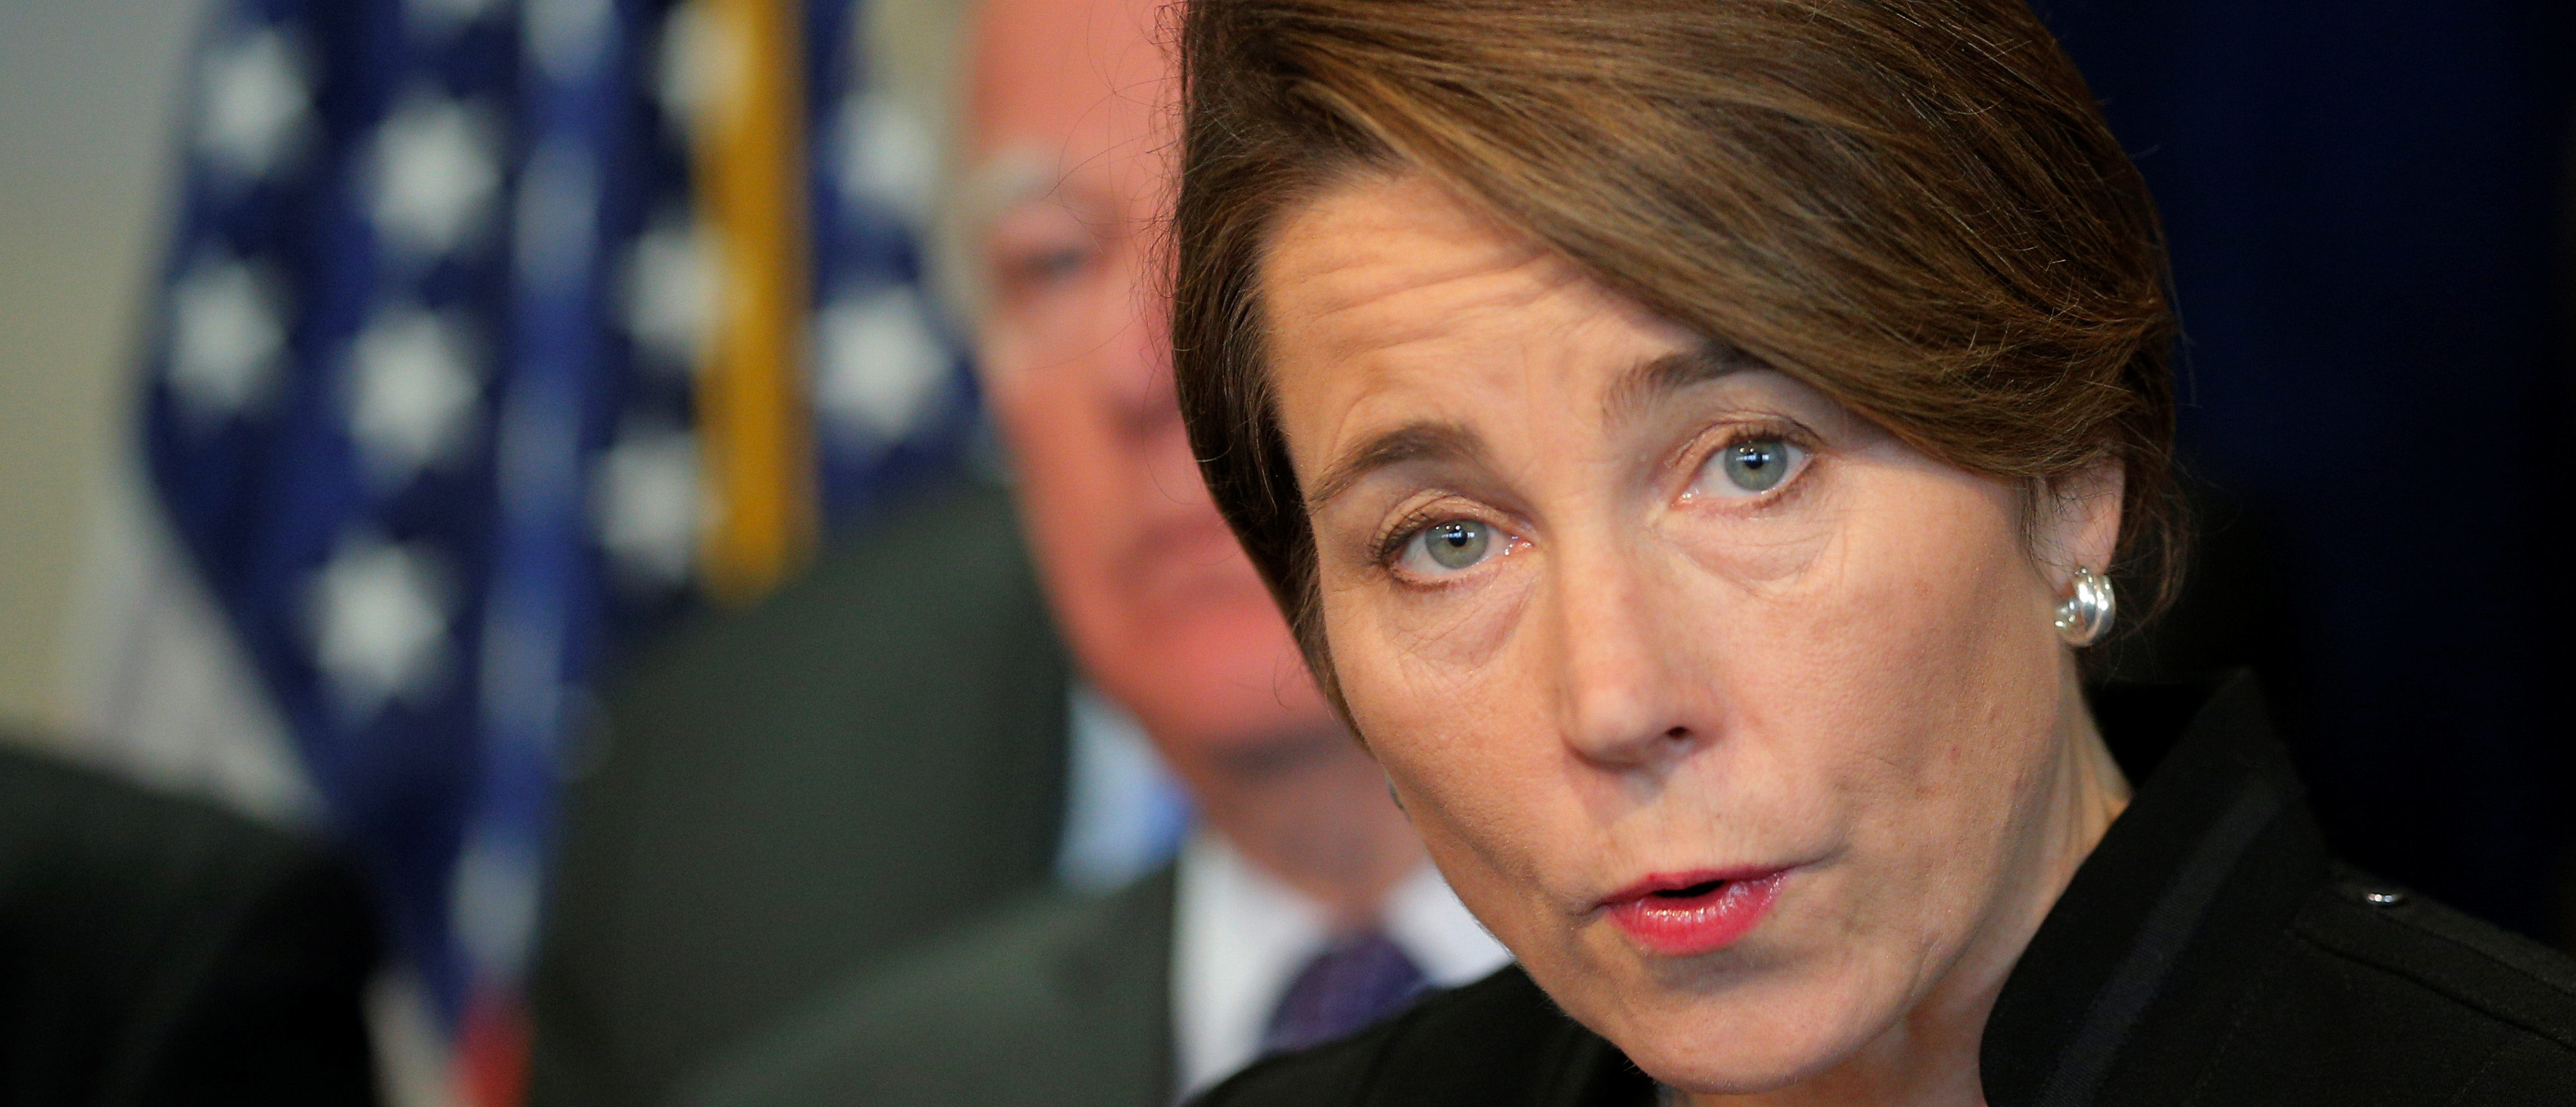 Massachusetts Attorney General Maura Healey announces the state will join a lawsuit challenging U.S. President Donald Trump's executive order travel ban in Boston